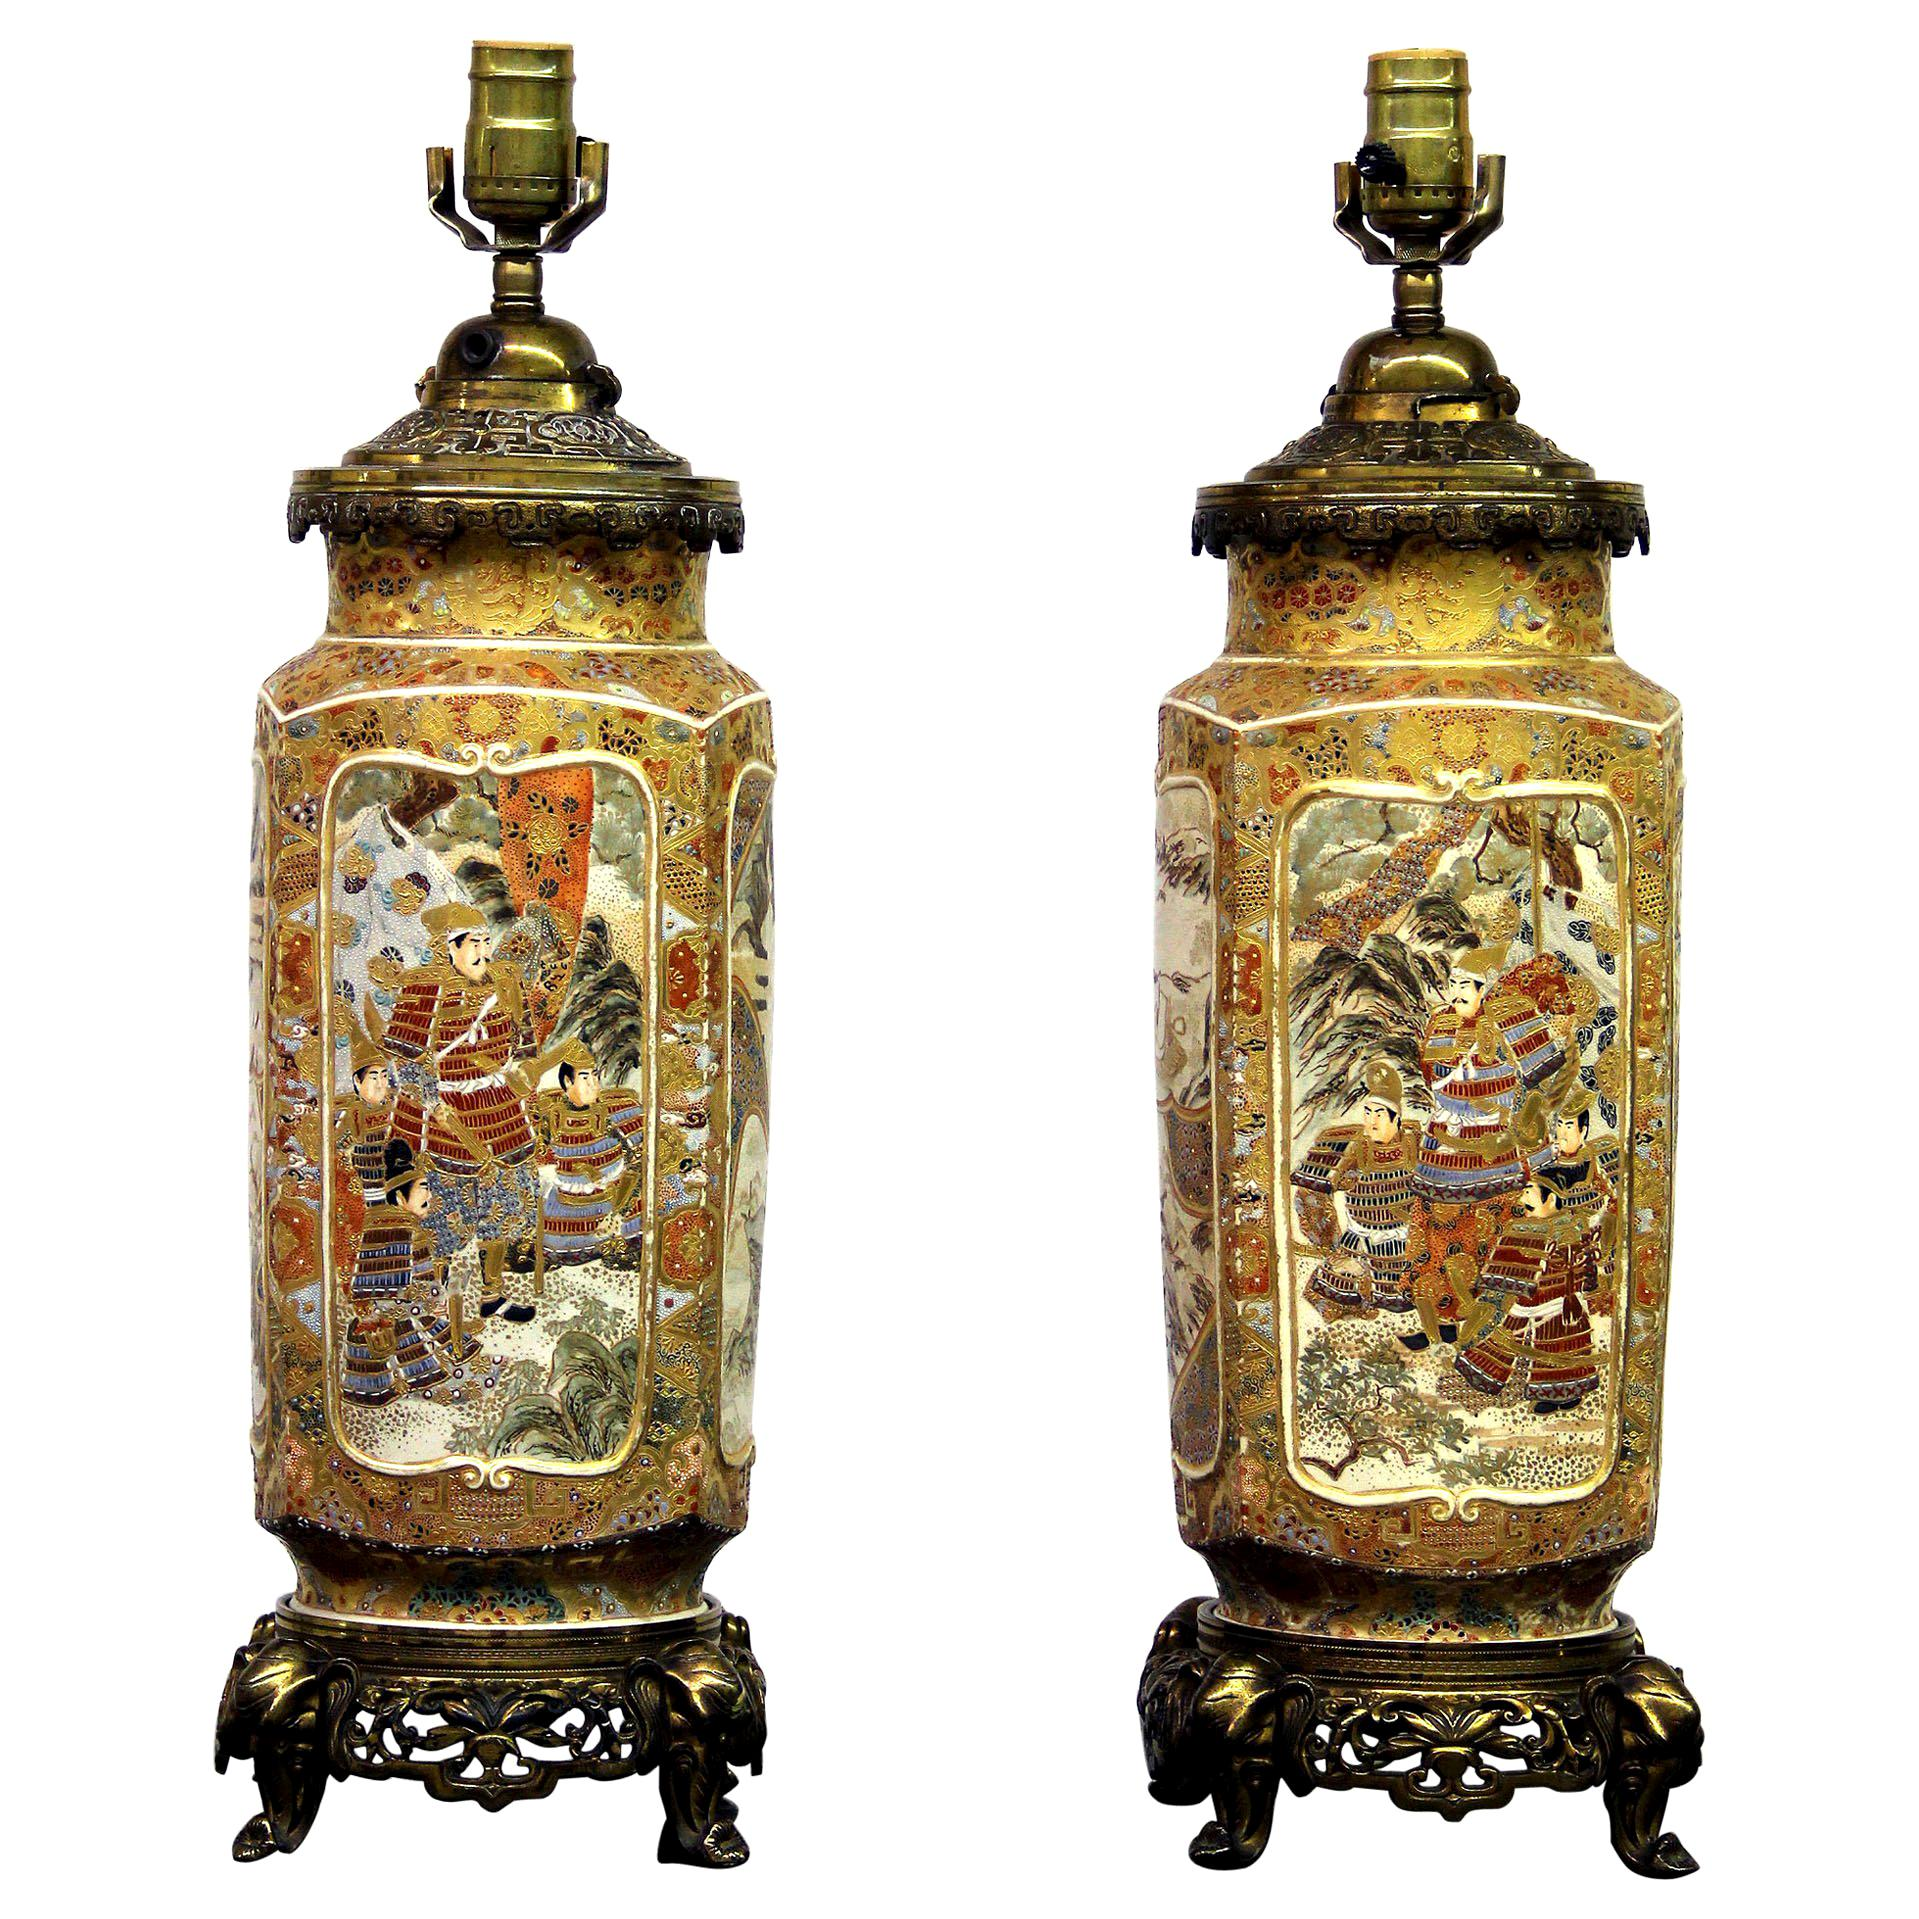 Pair of Late 19th Century Gilt Bronze and Japanese Satsuma Porcelain Lamps